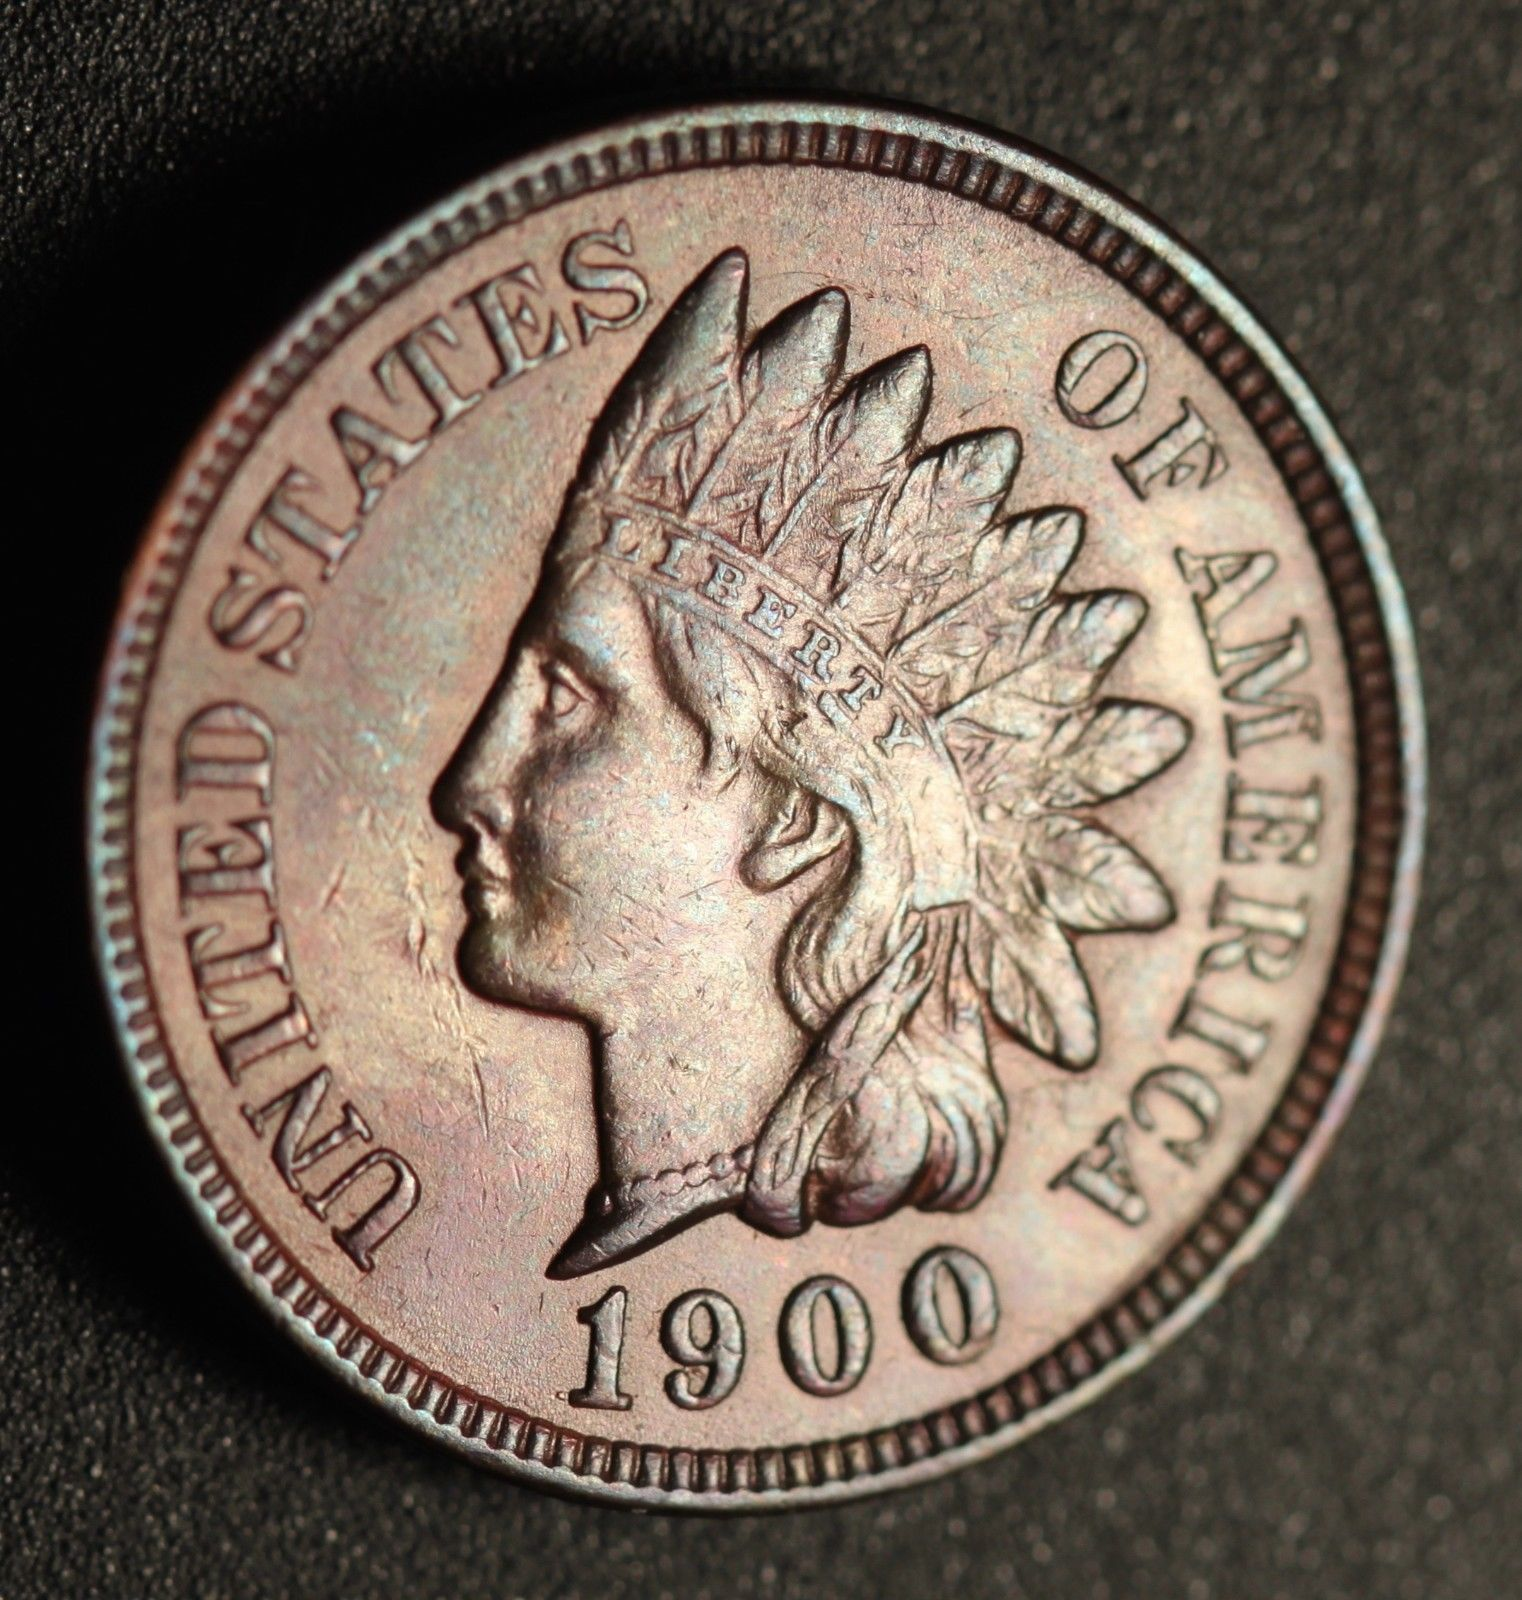 1900 RPD-019 - Indian Head Penny - Photo by Ed Nathanson